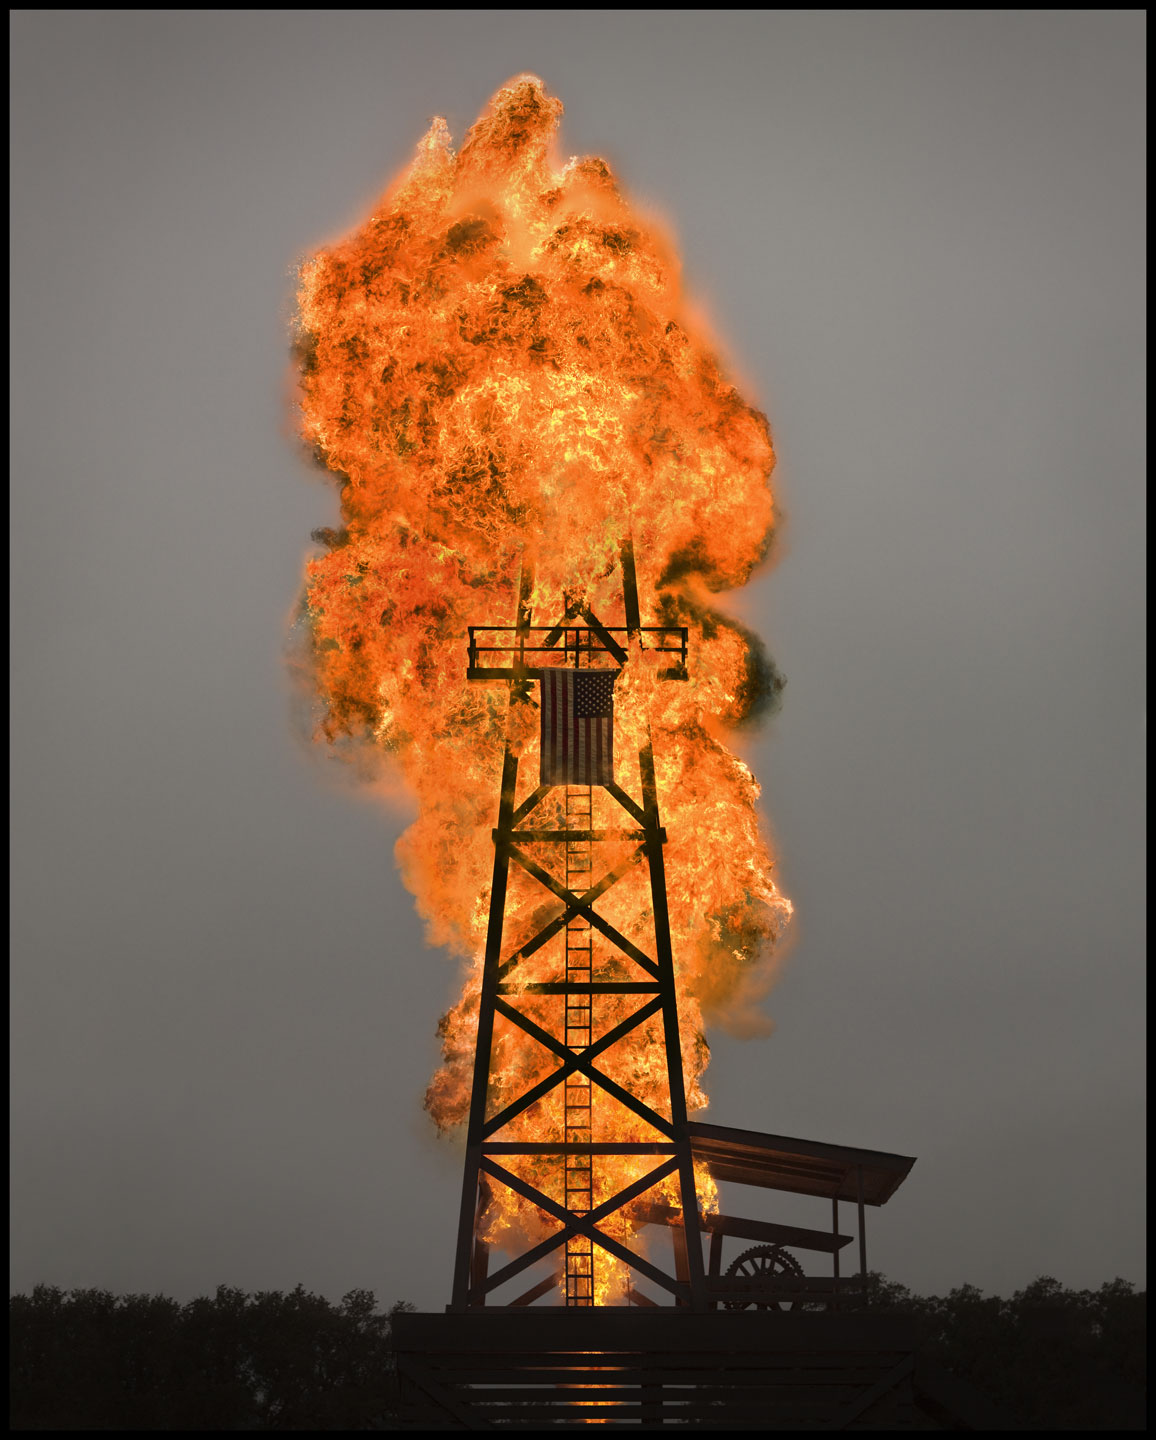 Oil Derrick Explosion - Driftwood, TX - Fast Company